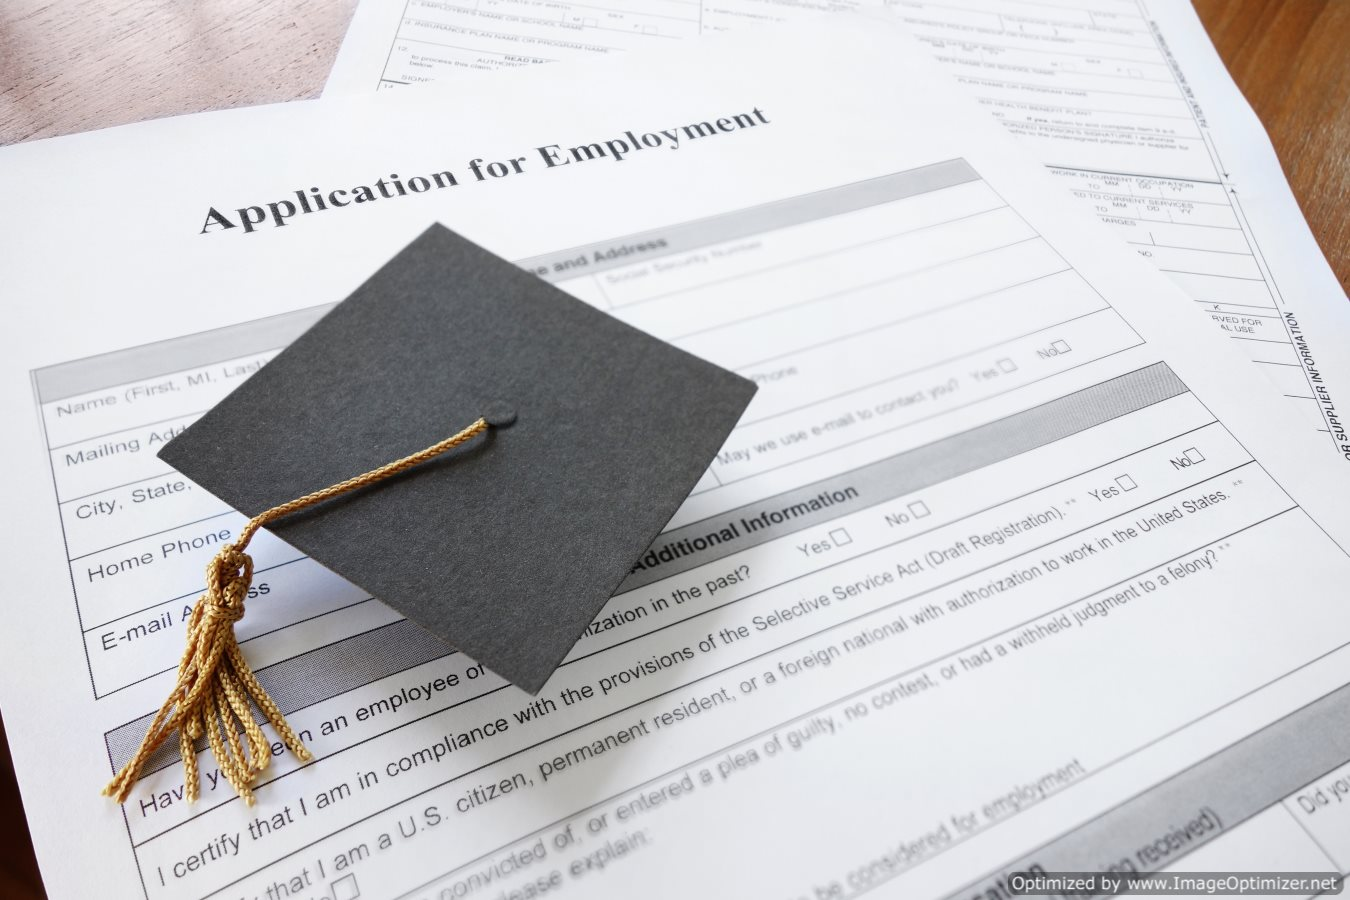 The Future is not looking so Bright: Class of 2013 Faces Grim Job Prospects